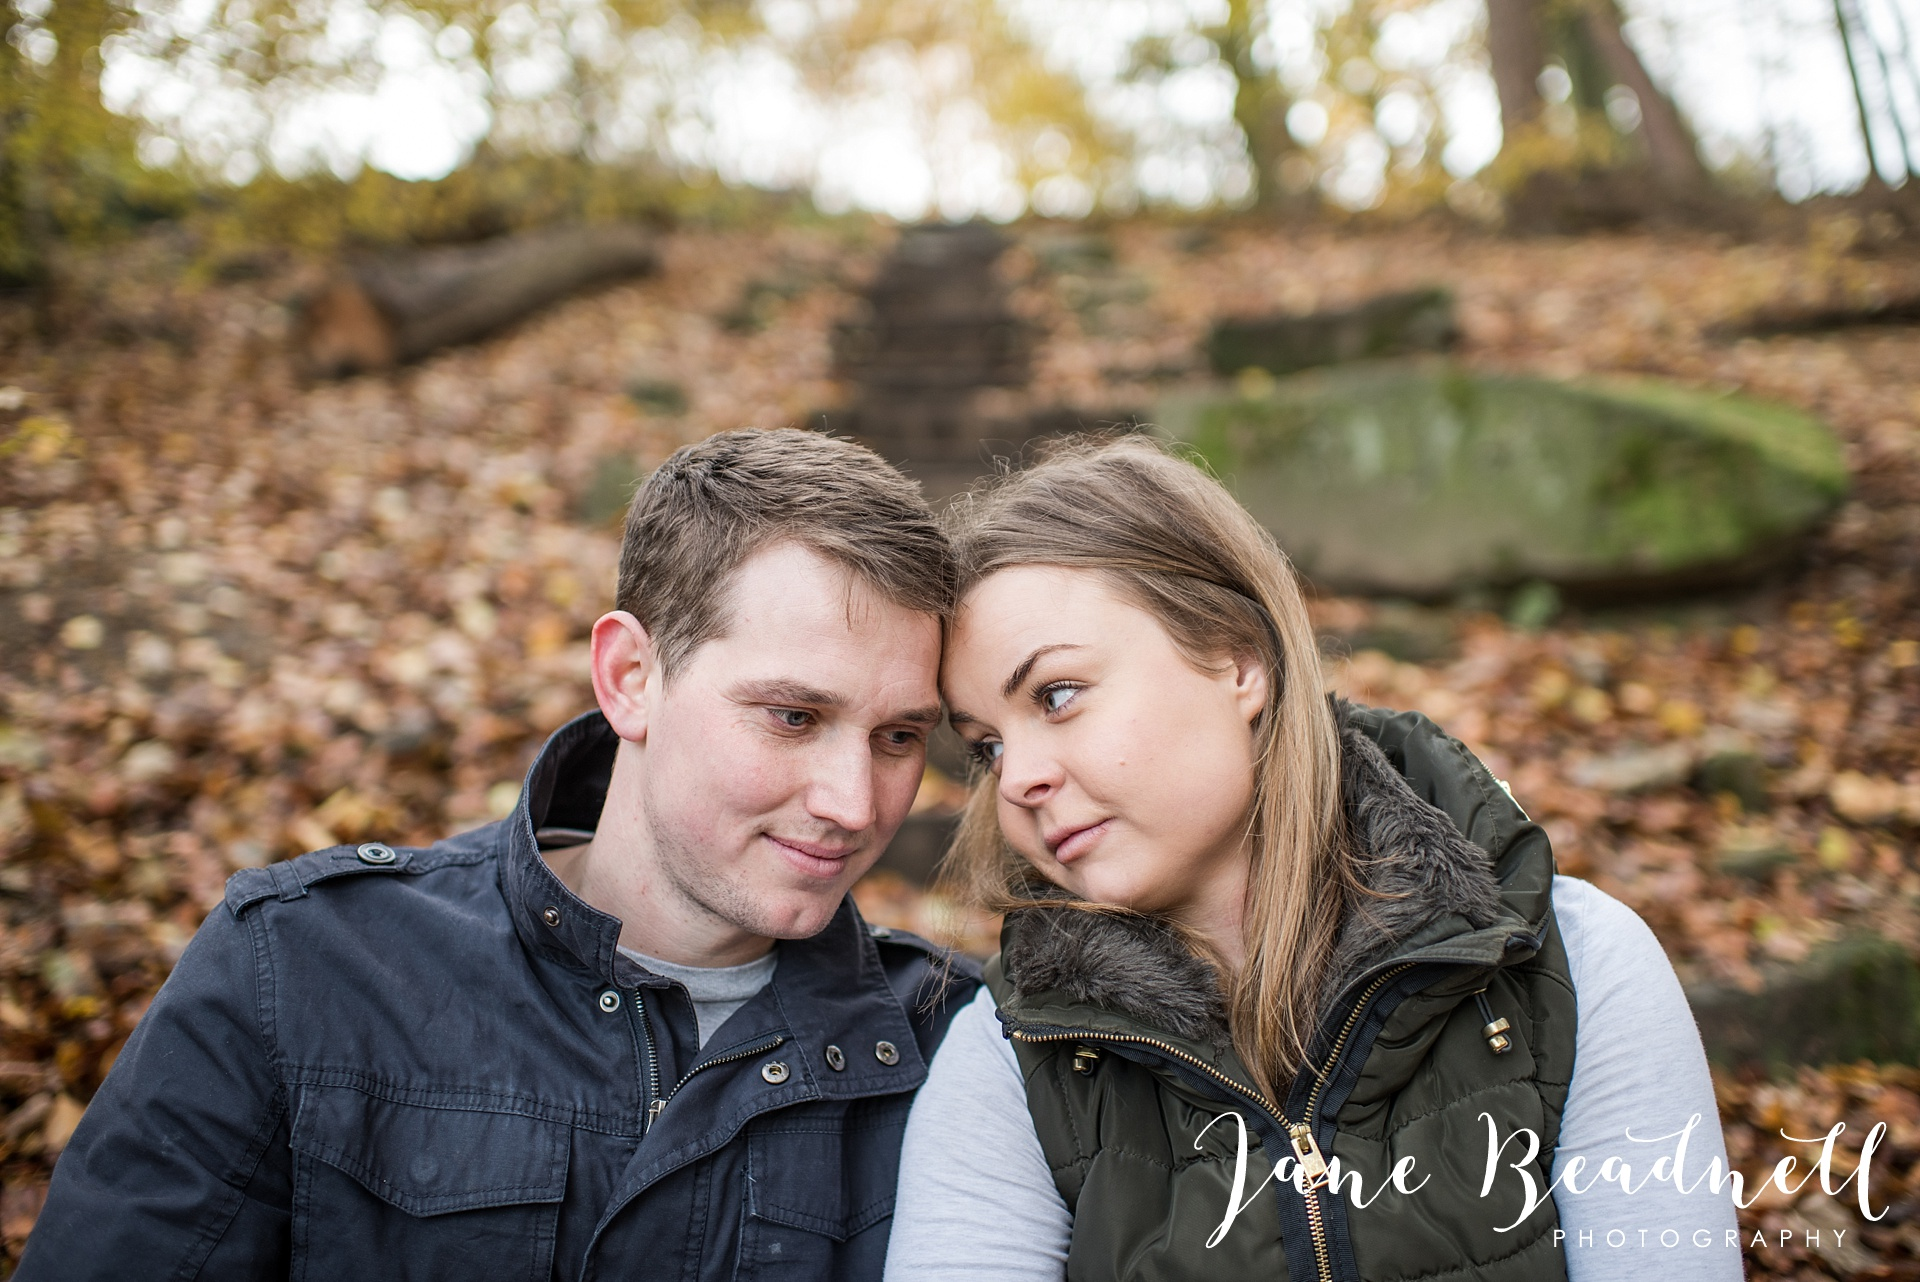 engagement-shoot-yorkshire-wedding-photographer-jane-beadnell-photography-uk-and-destination-wedding-photographer-engagement-shoot_0037